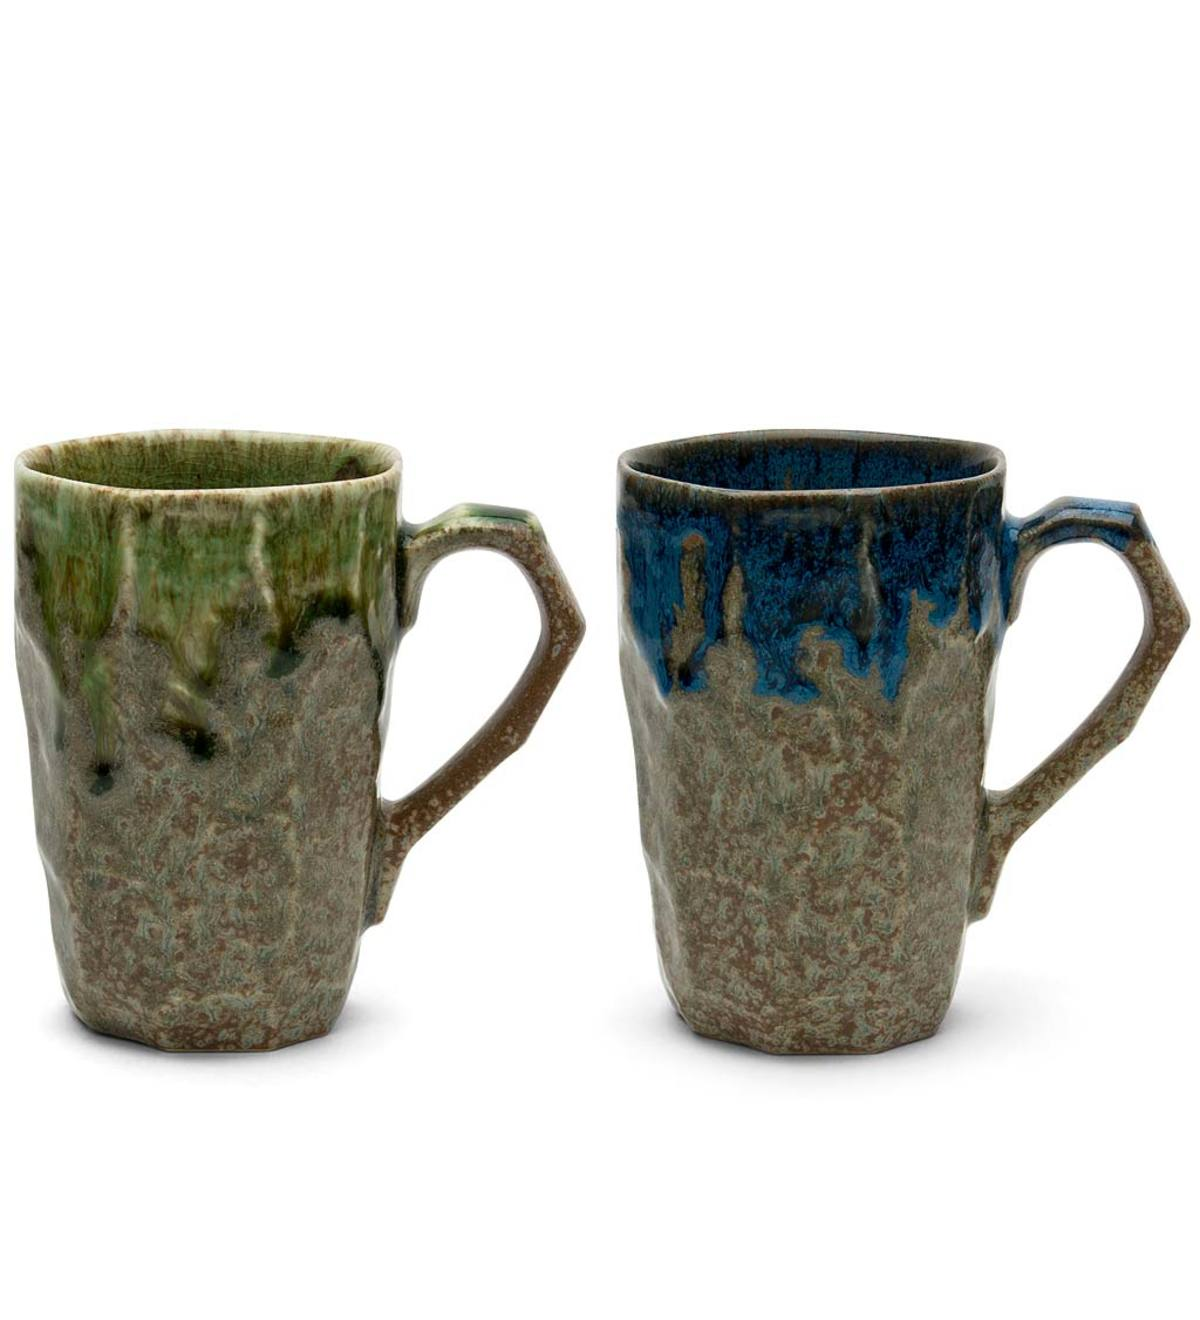 Tall Jewel Tone Boulder Mugs, Set of 2